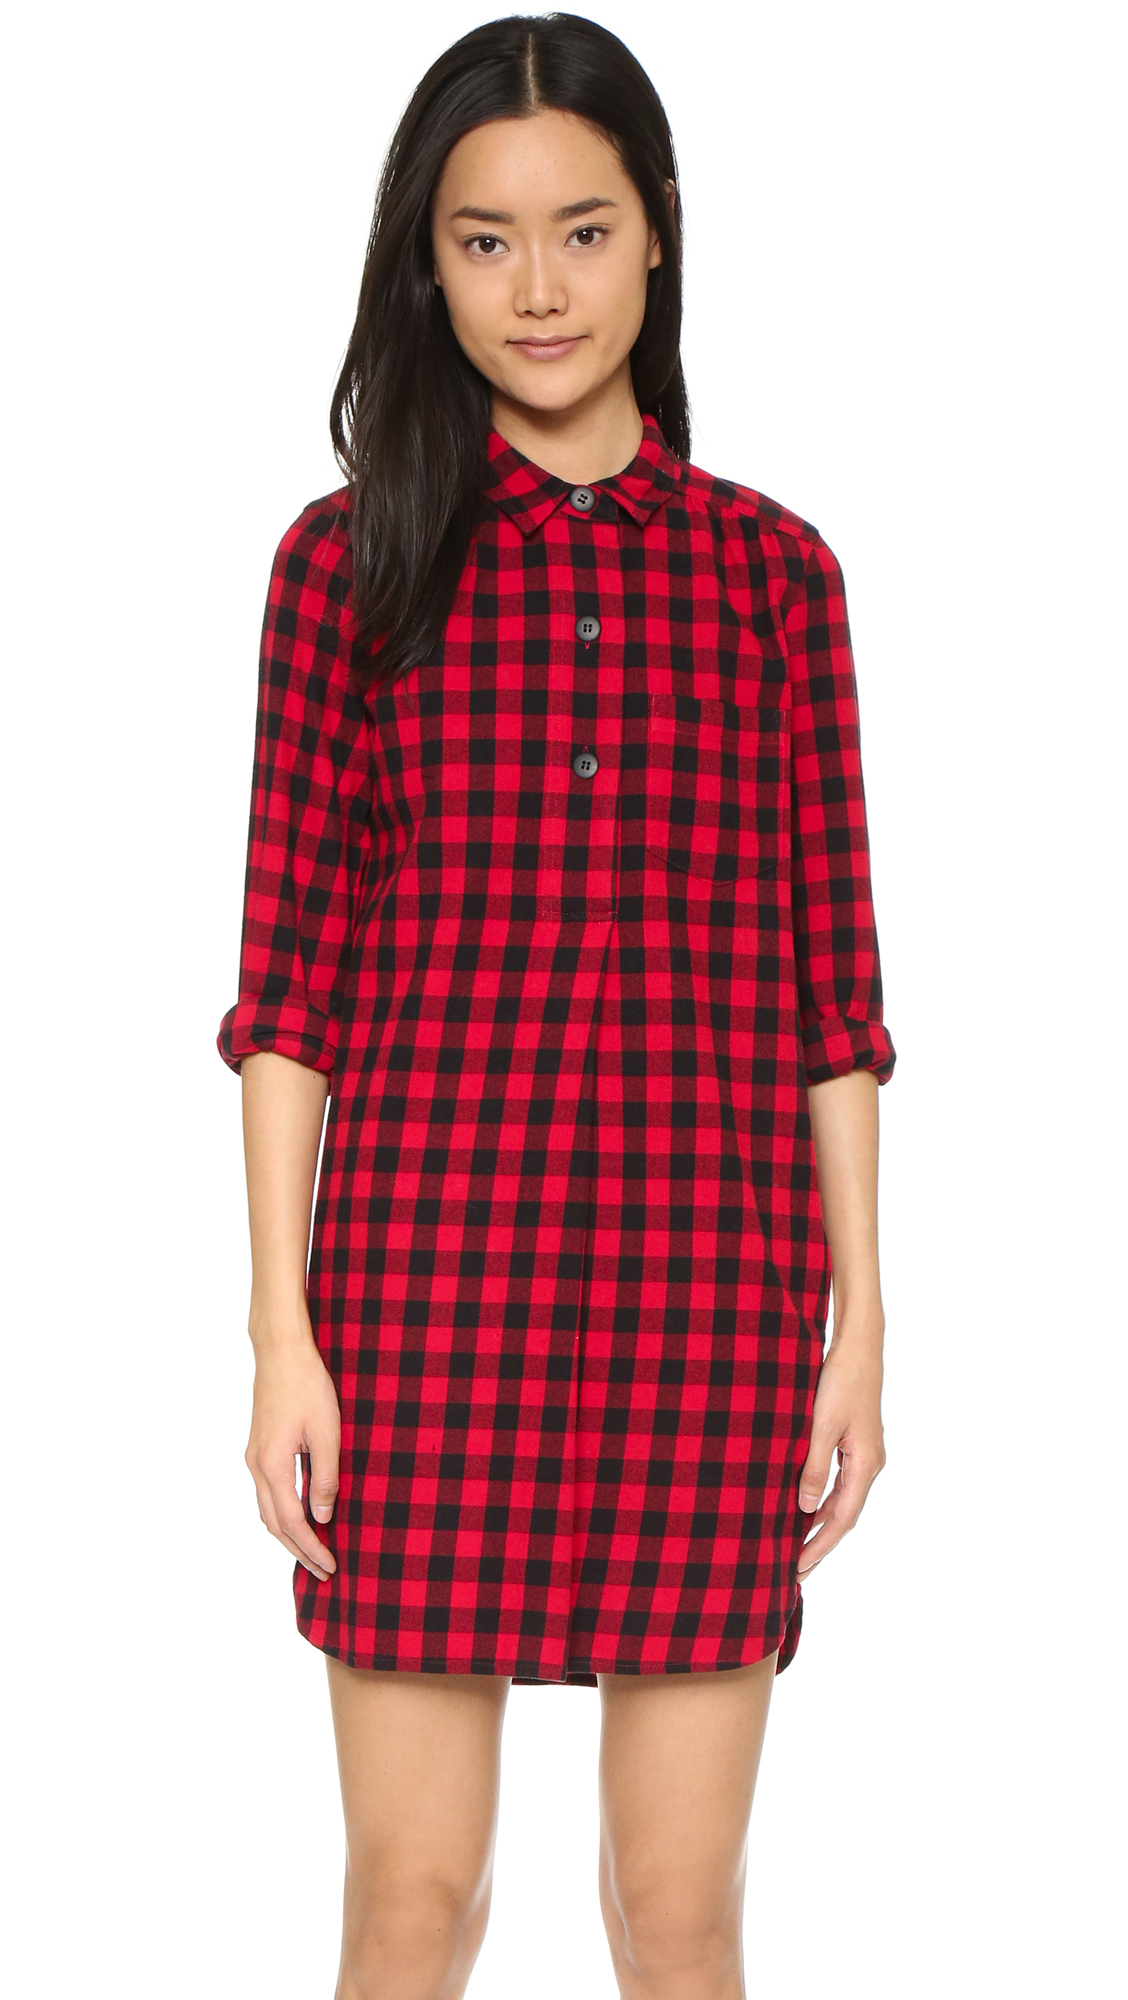 Madewell Jane Plaid Flannel Shirtdress in Red - Lyst 139584b5a